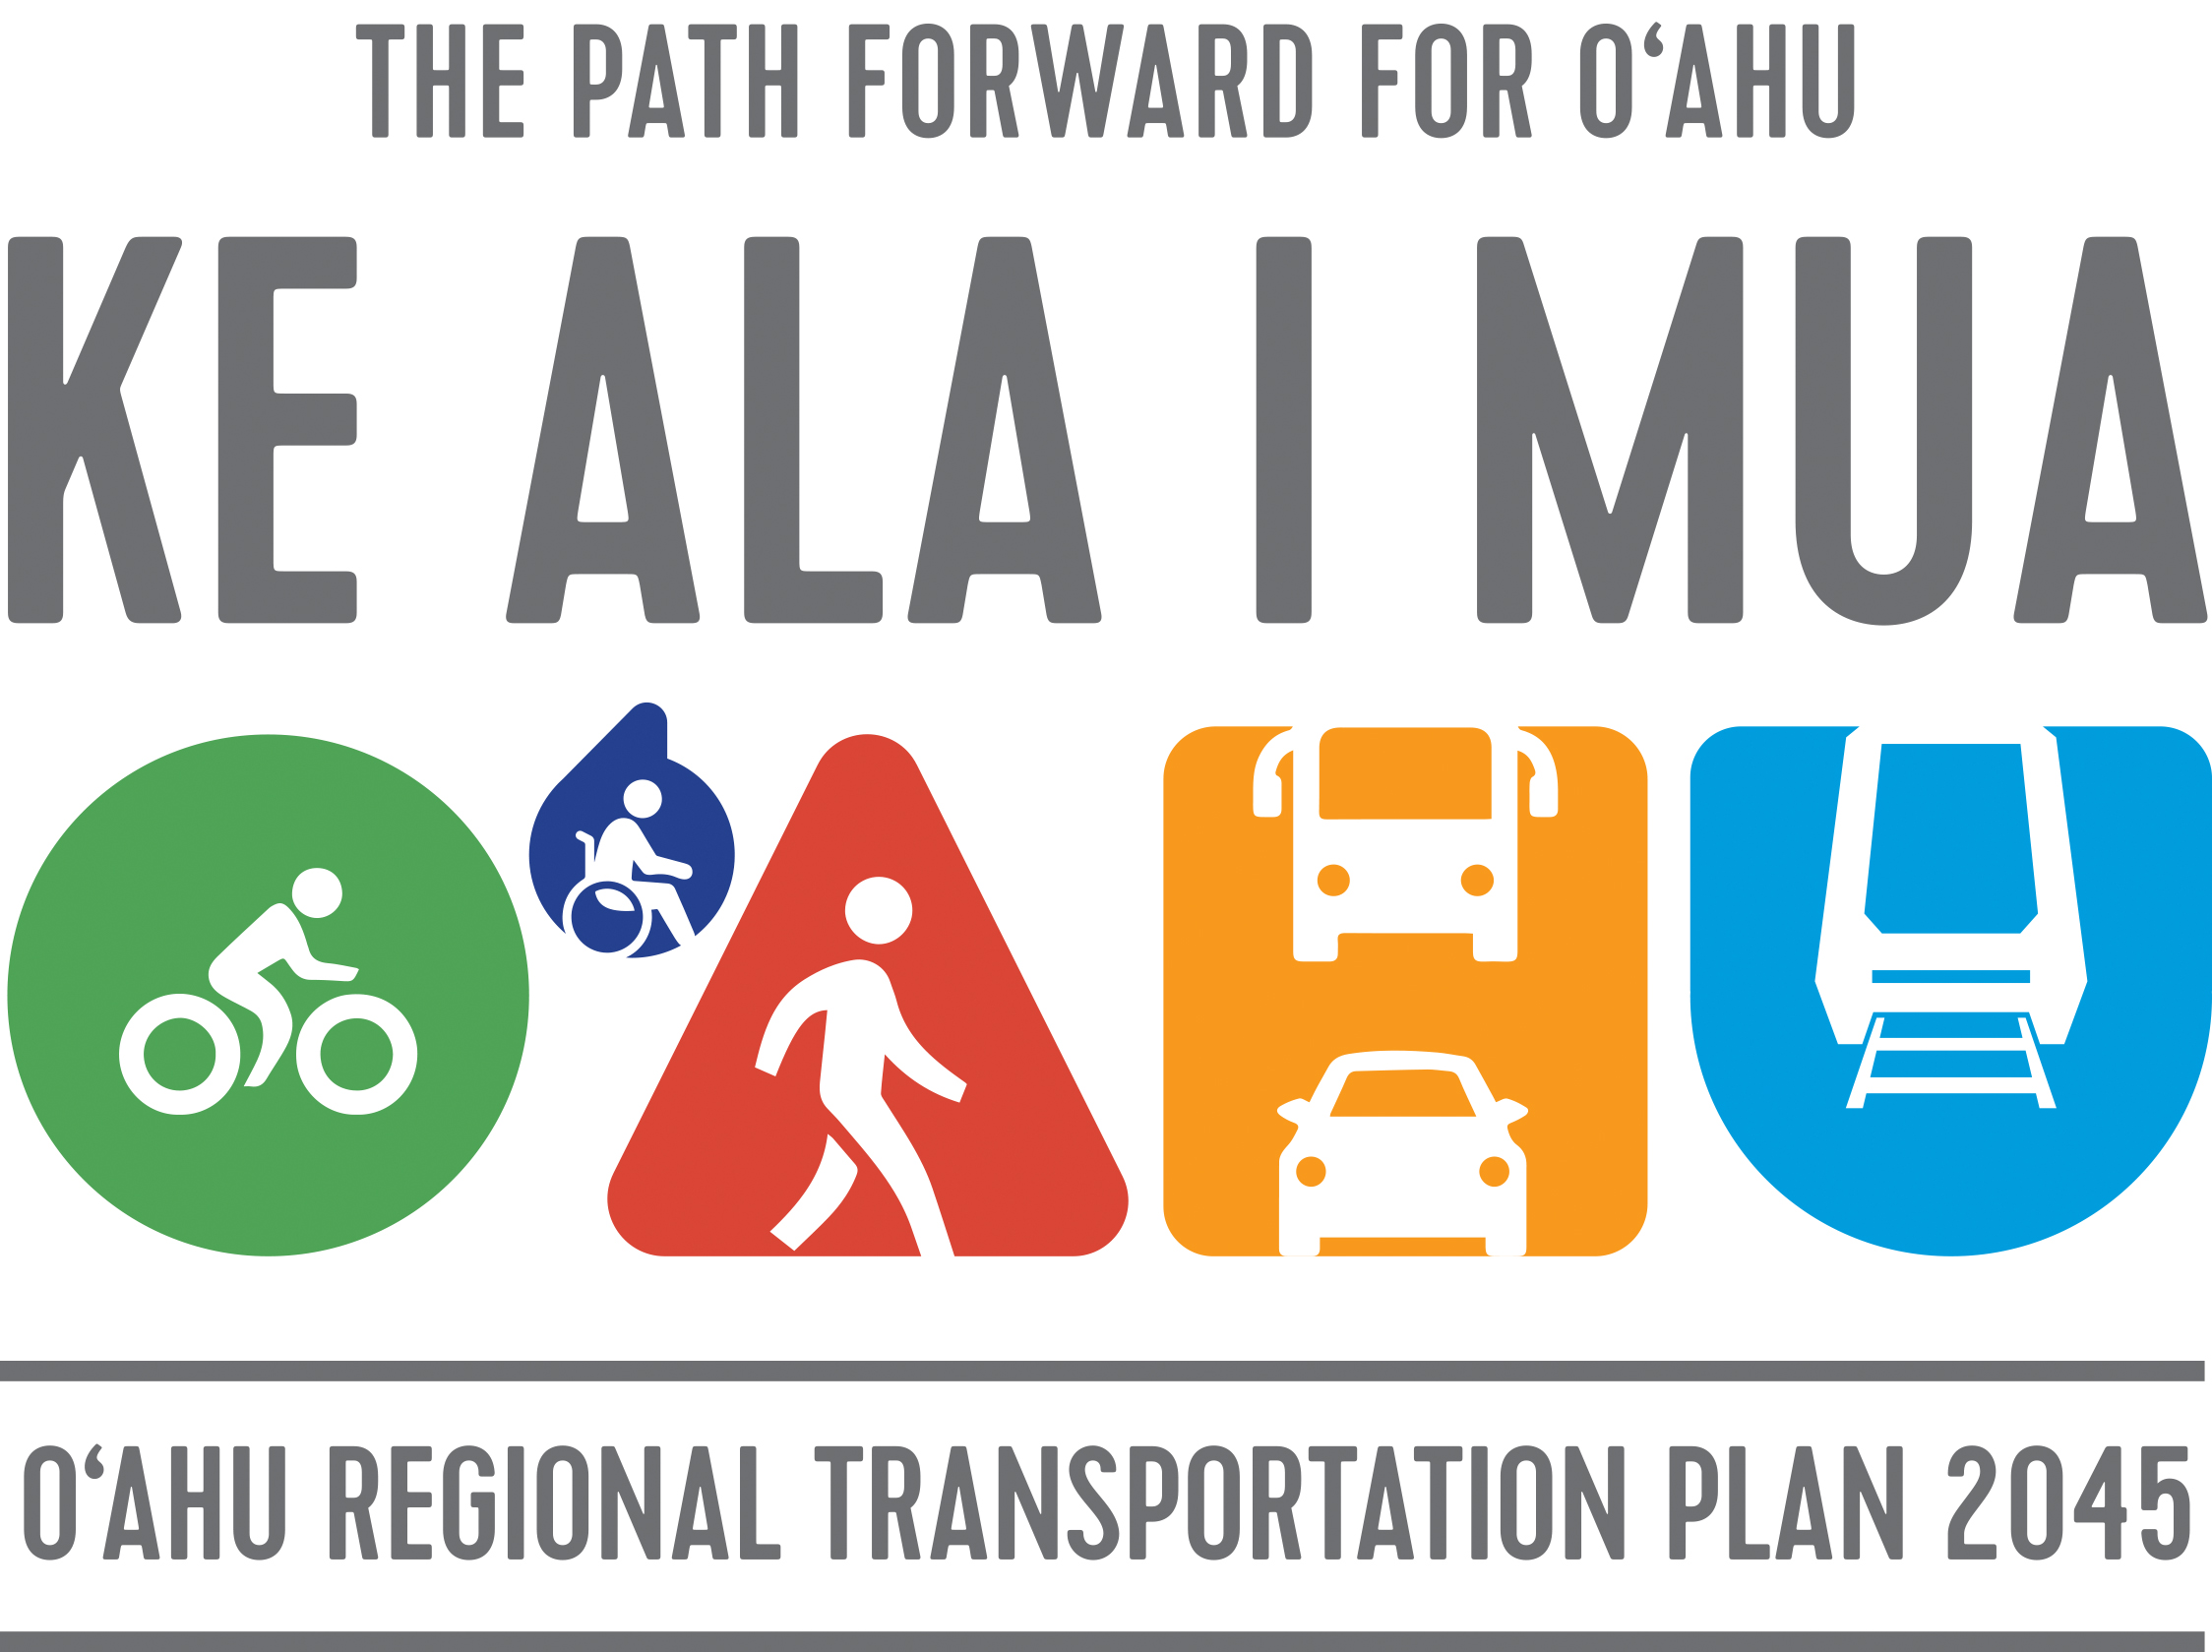 26a6bb21cb Vision - Goals - Priorities for the Future of Transportation on O ahu